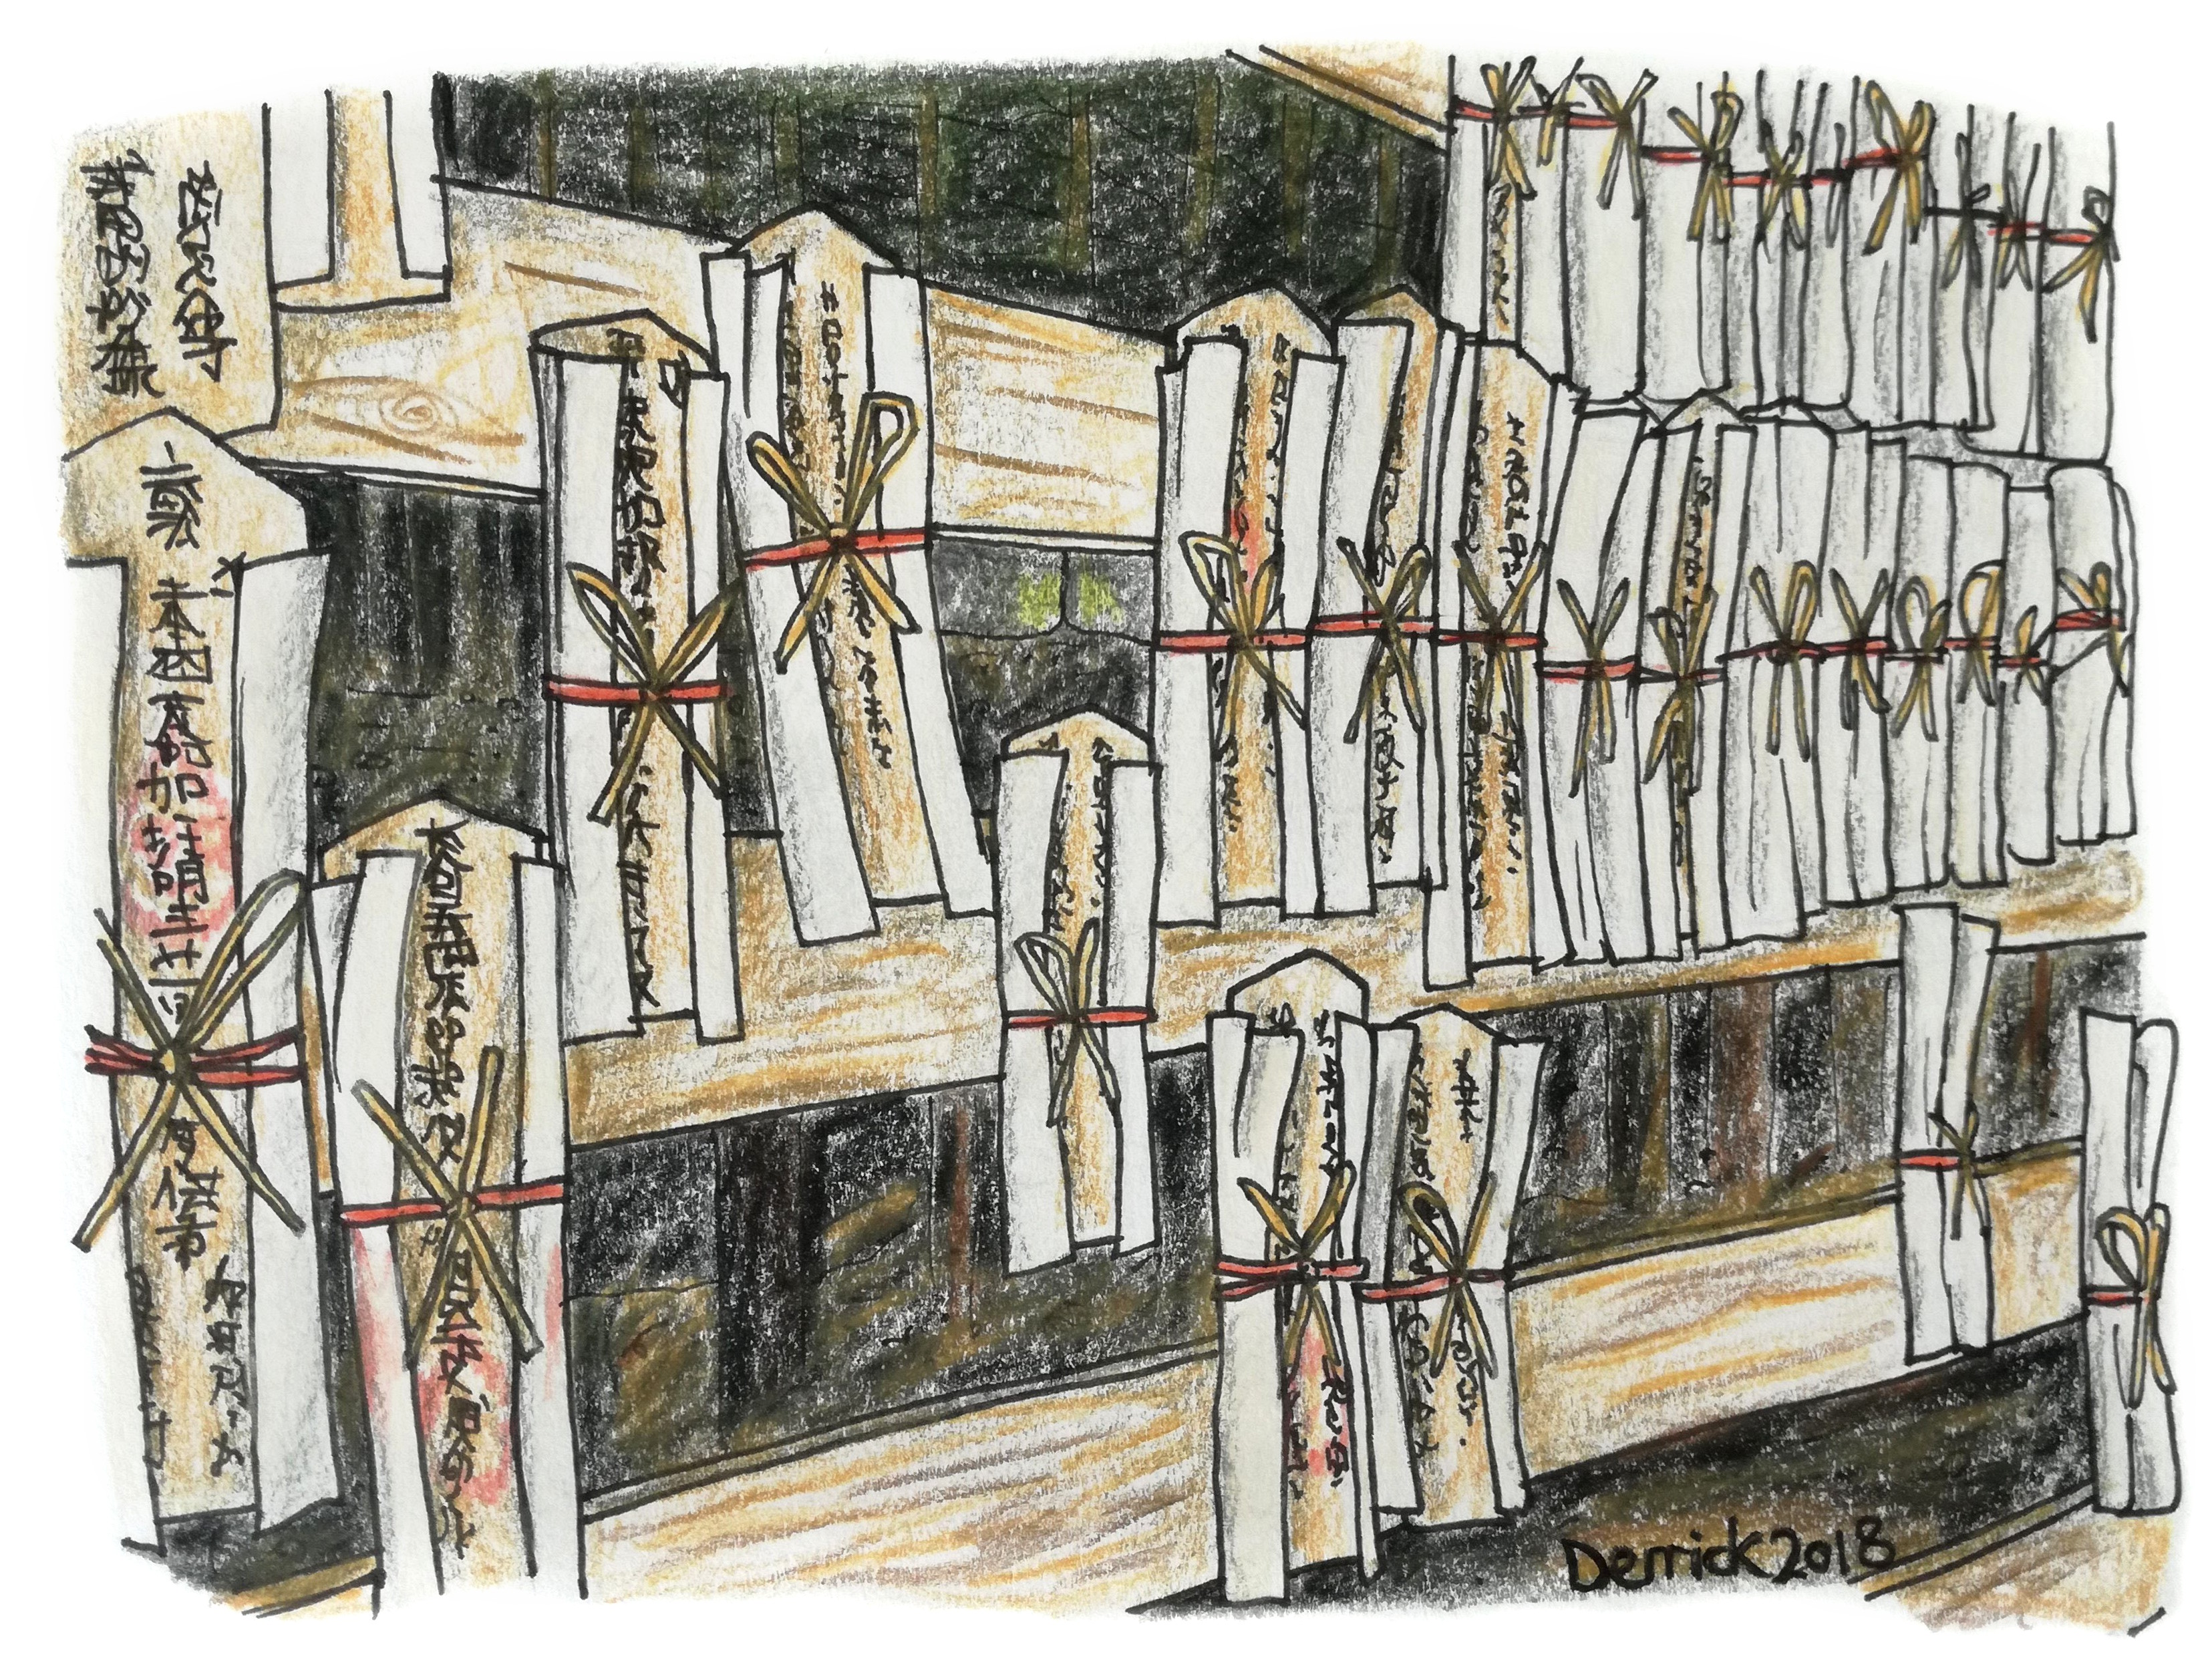 Drawing of Buddhist prayer blocks outside a temple in Koysan